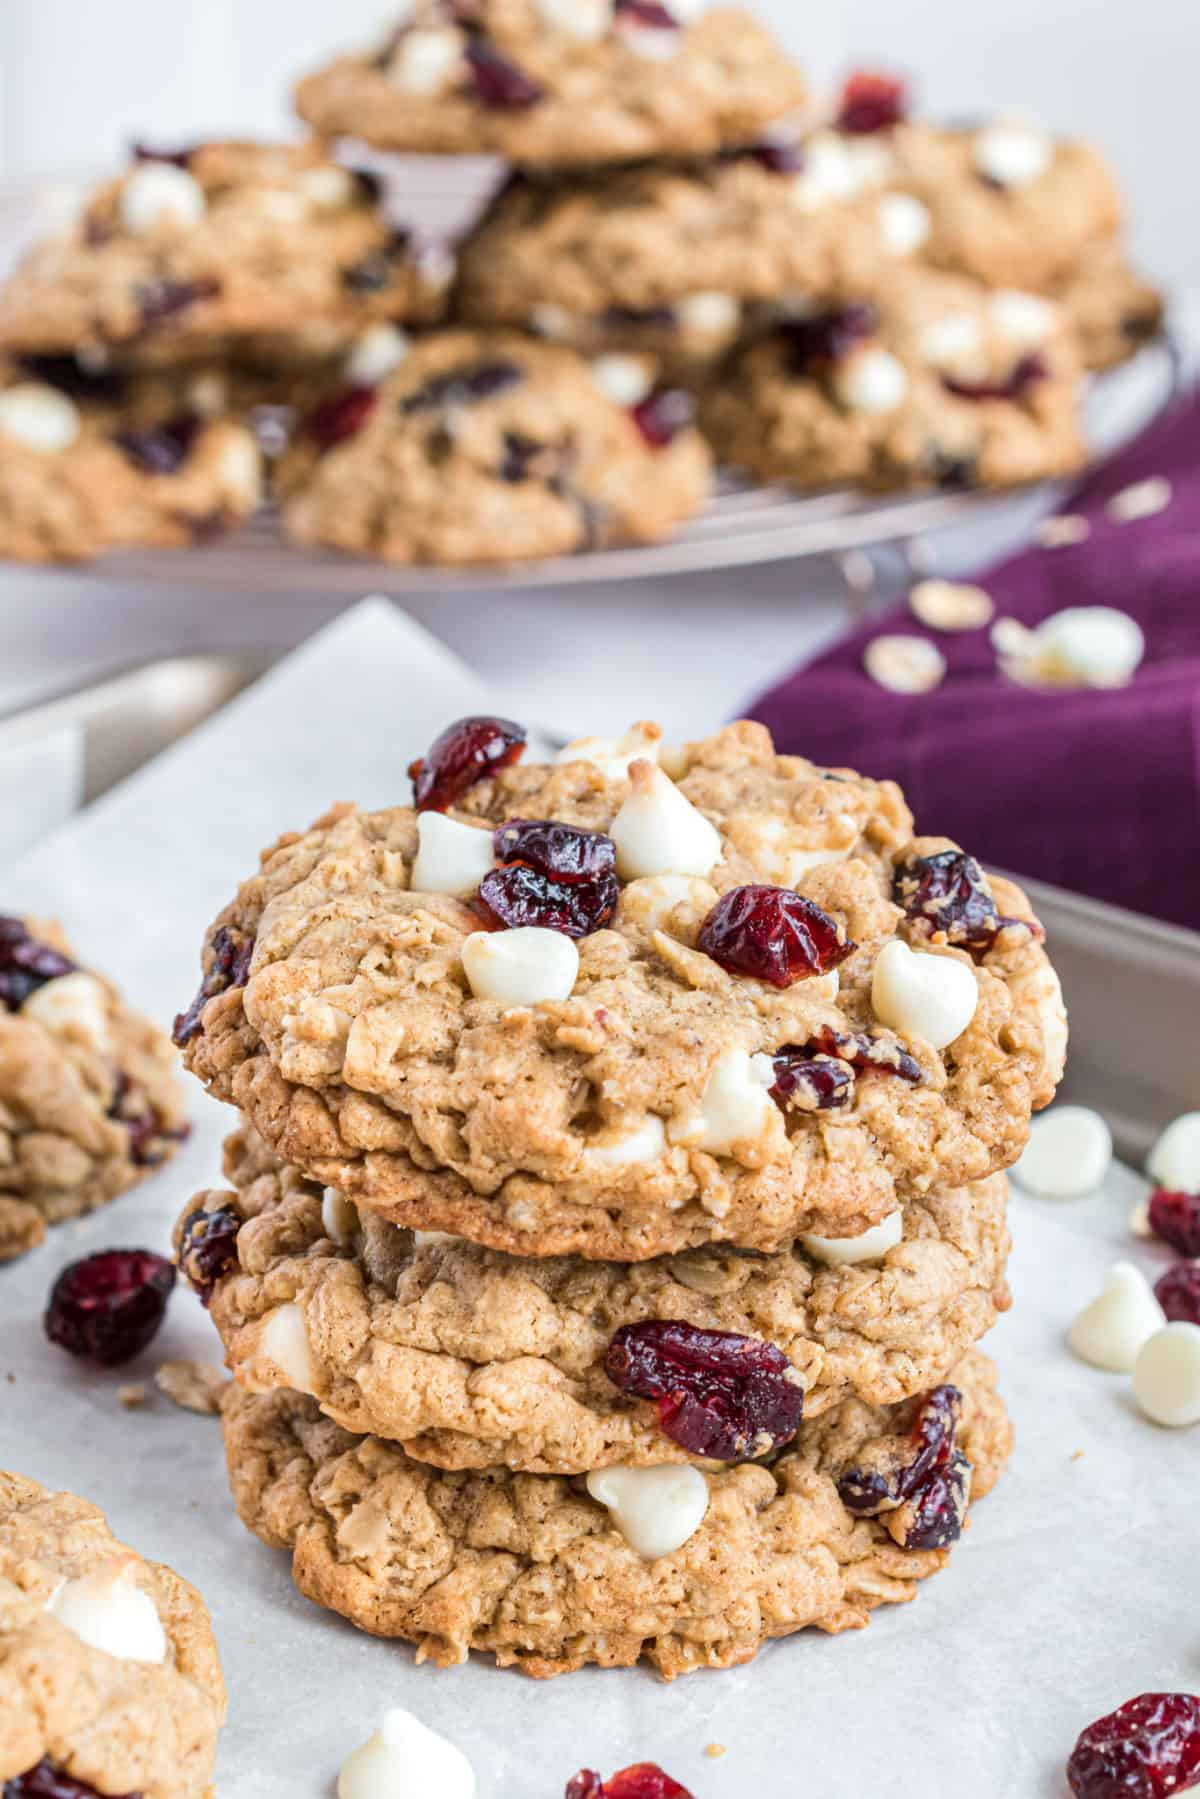 Stack of three oatmeal cookies with white chocolate and craisins.